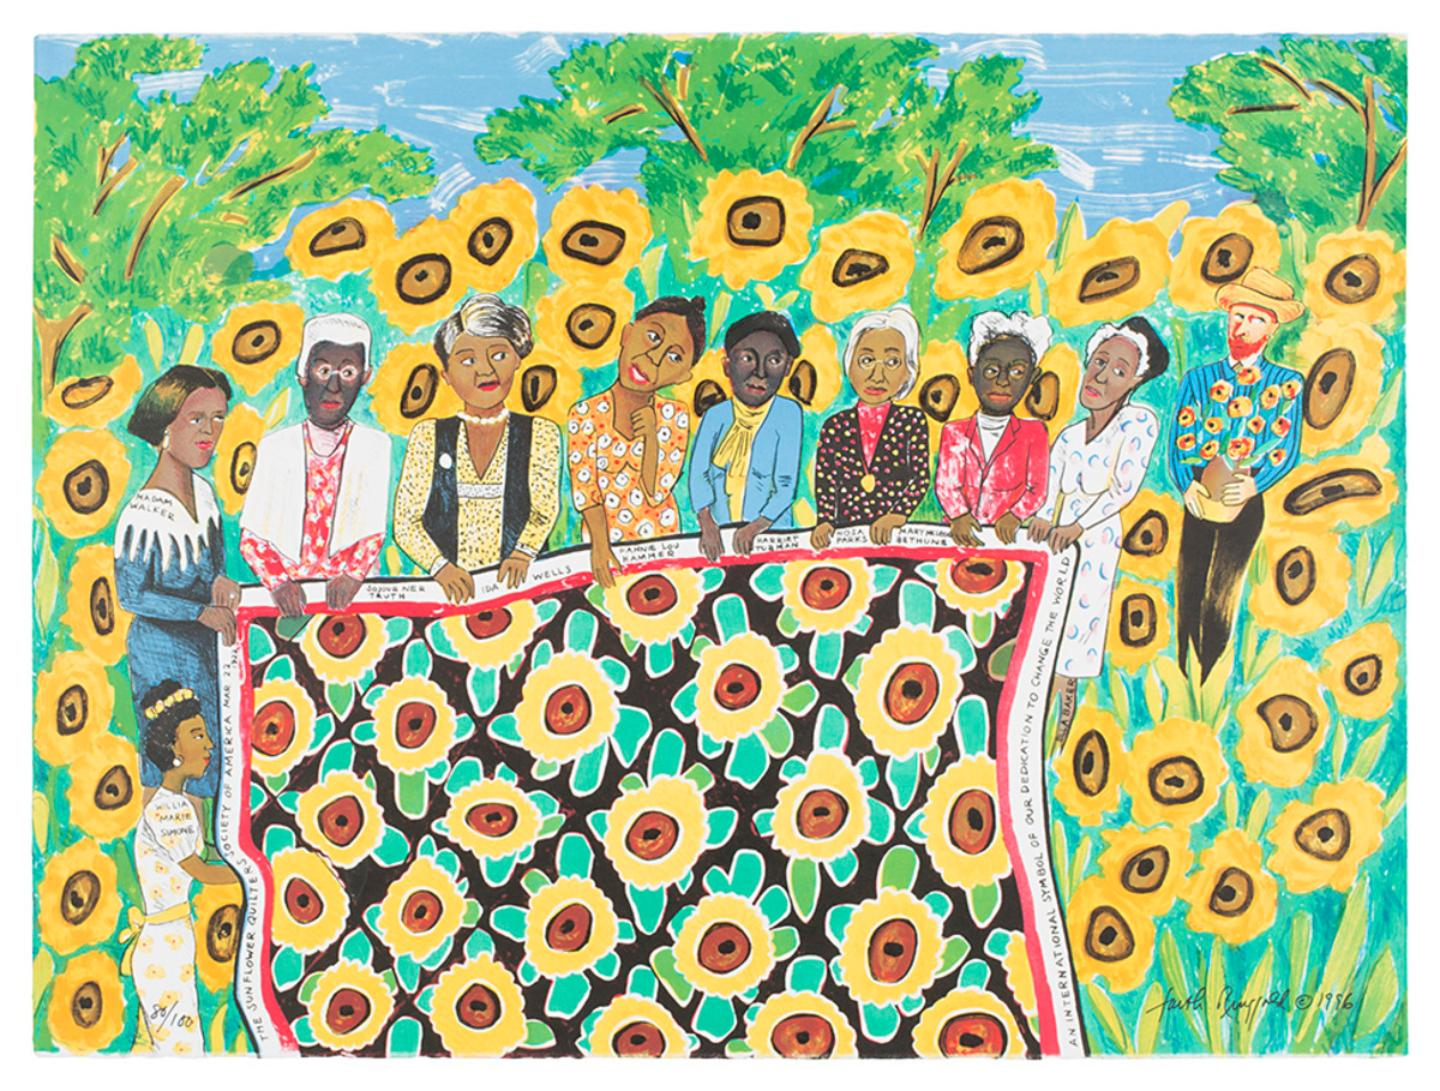 9 black women hold a sunflower quilt in a field of sunflowers with Van Gough standing beside them